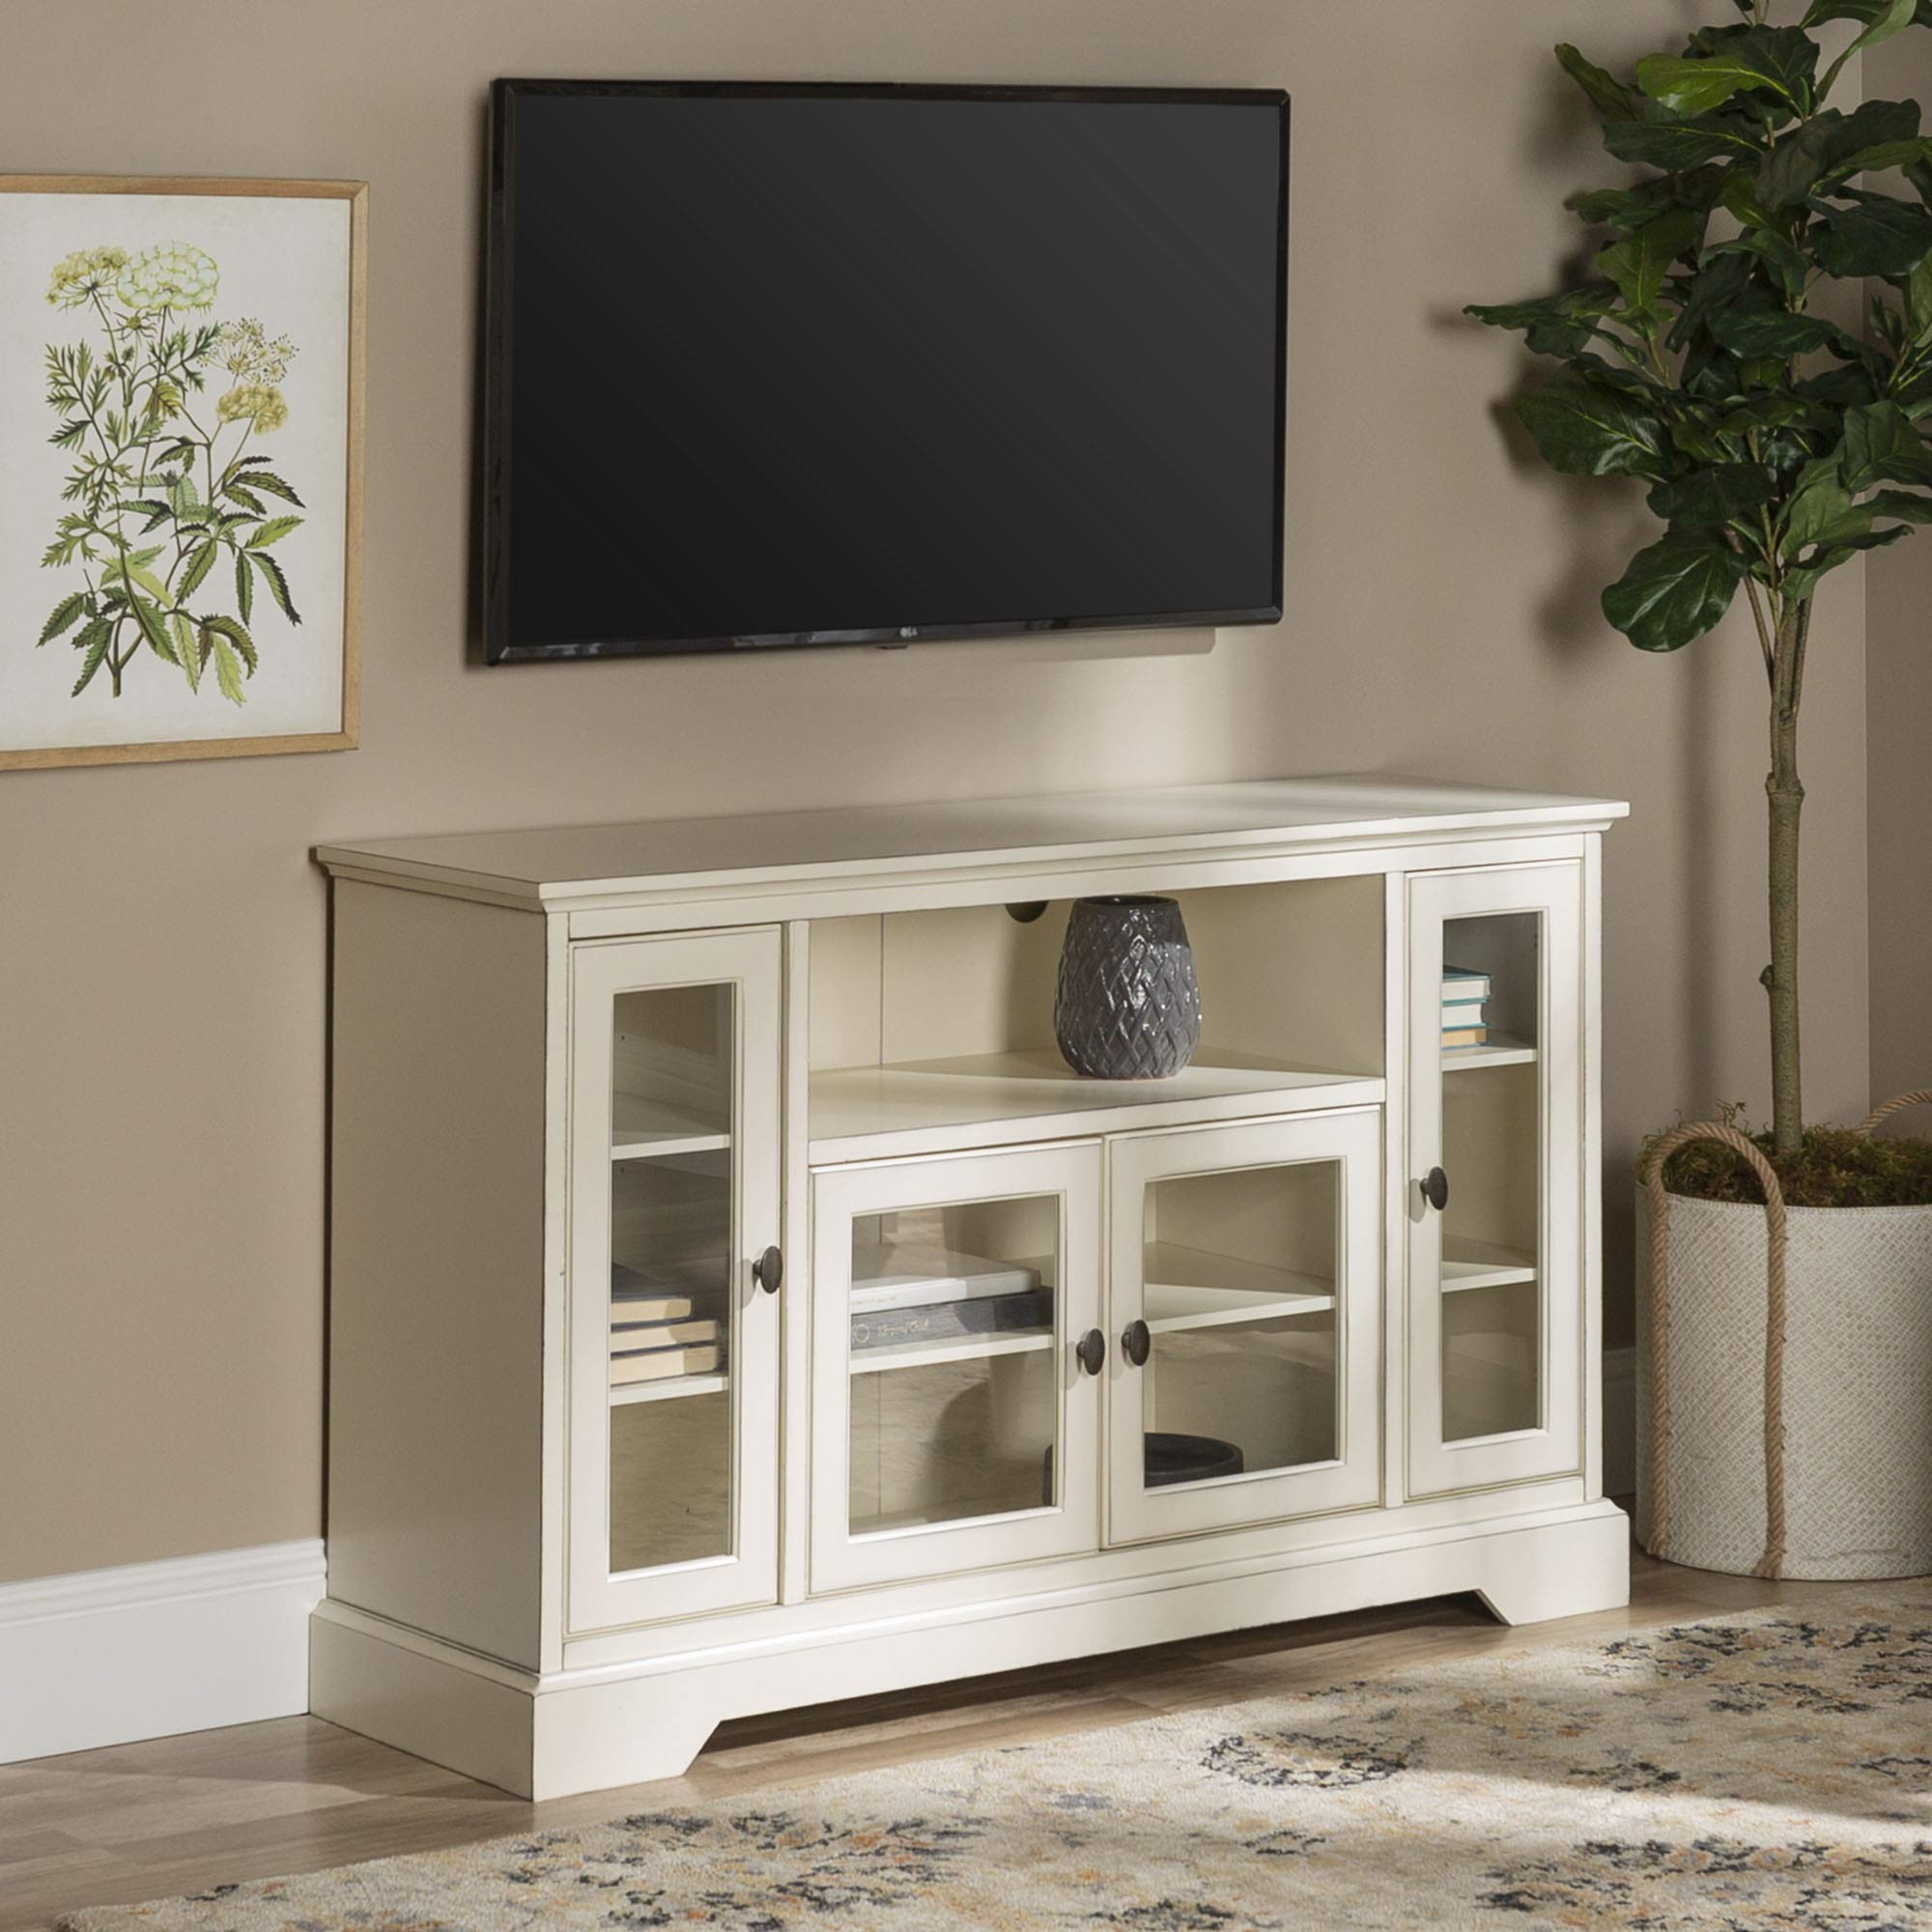 WE Furniture AZ52C32AWH Traditional Wood Stand for TV's up to 56'' Living Room Storage, 52'', White by WE Furniture